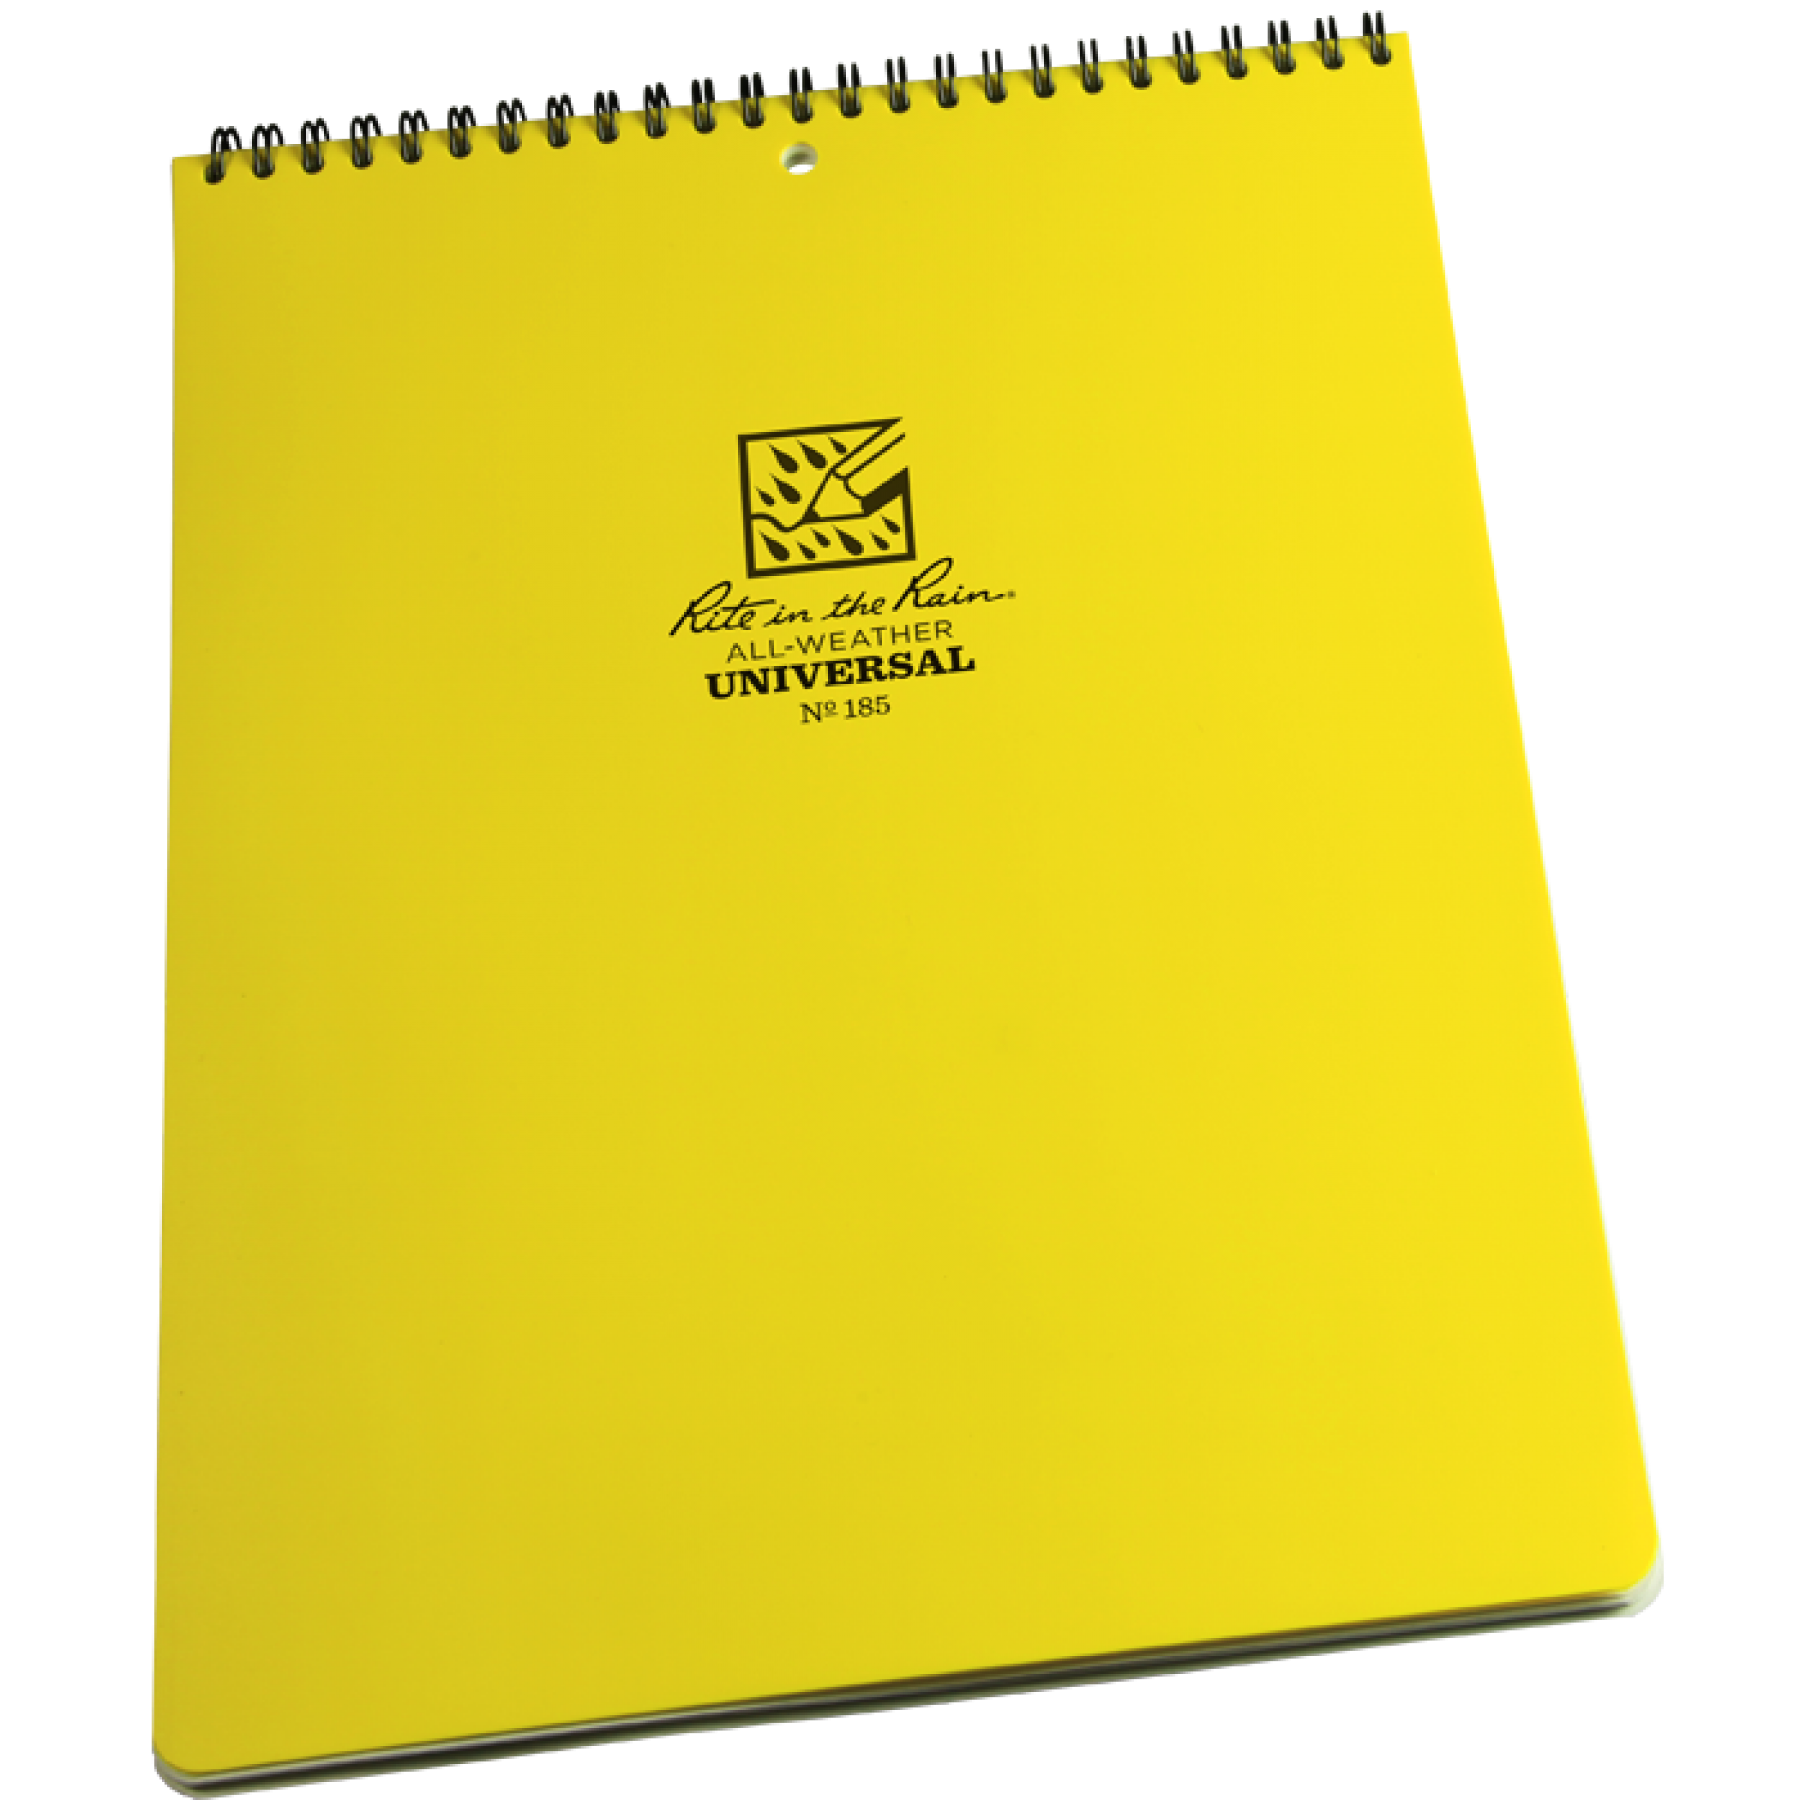 Notebook transparent yellow. Rite in the rain